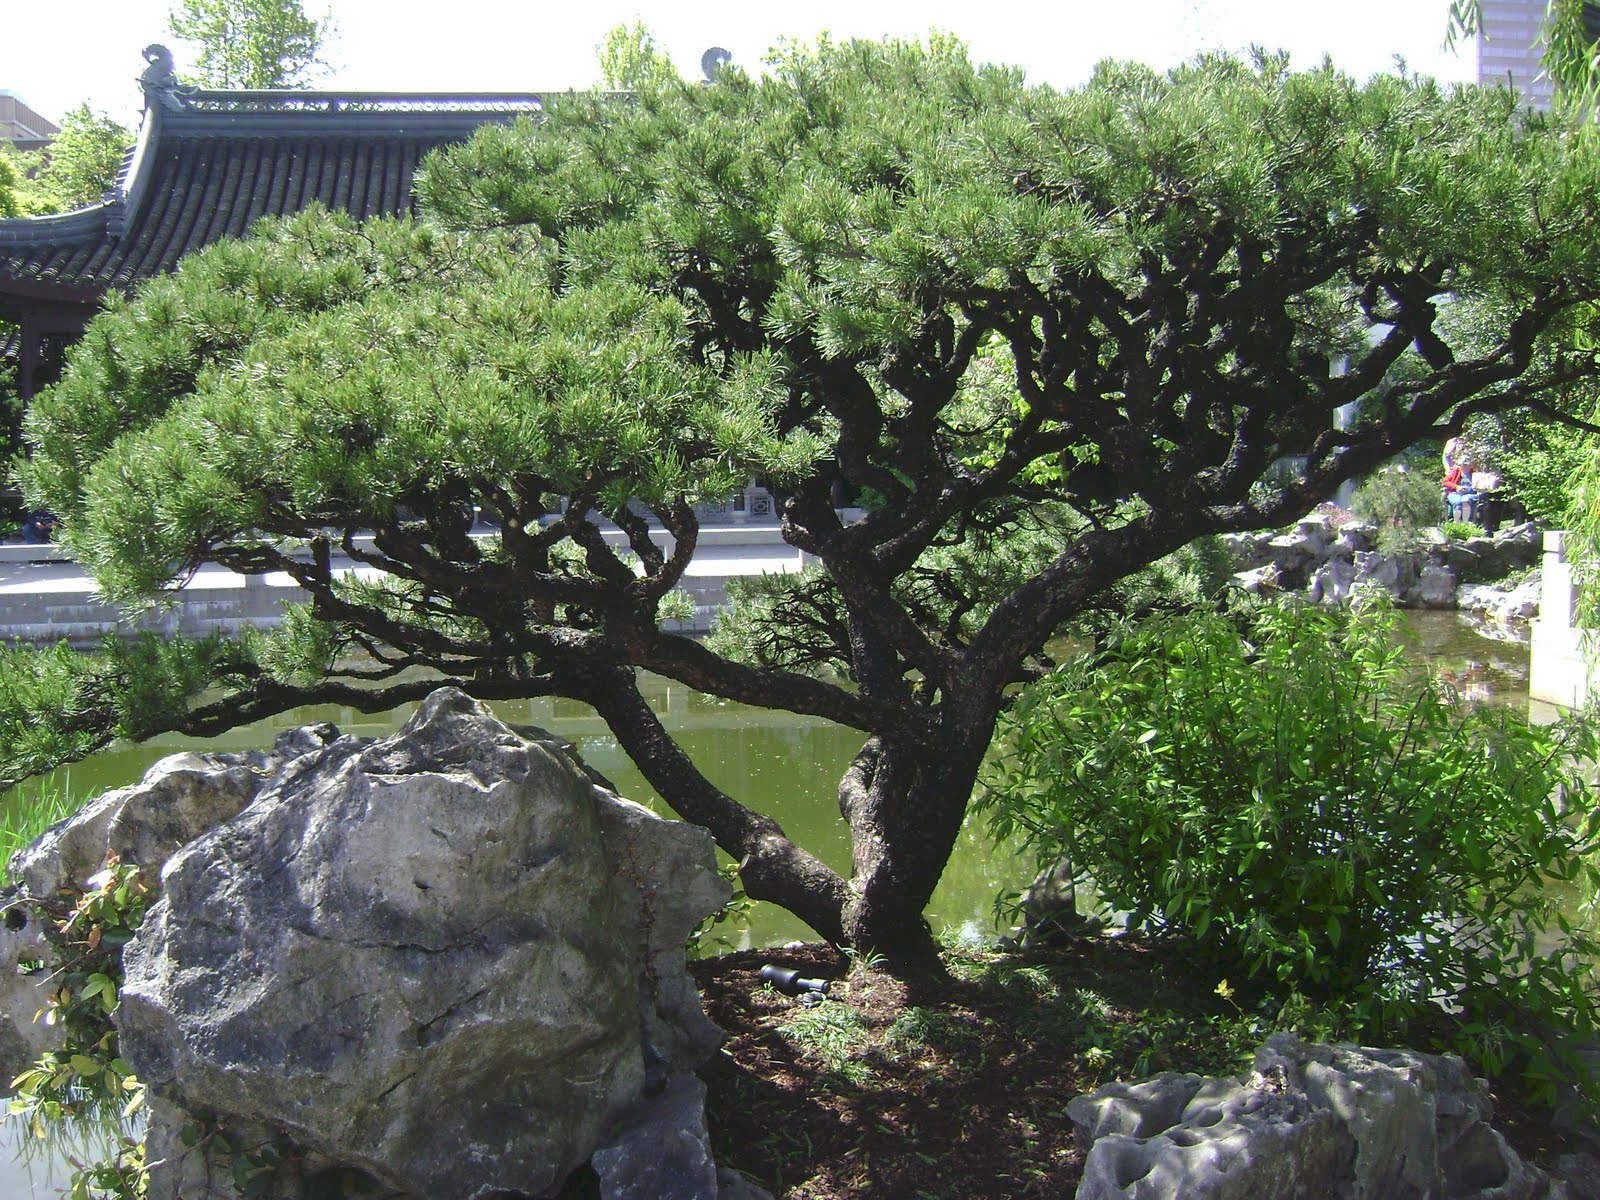 According To The Garden's Website, A Traditional Chinese Garden Is